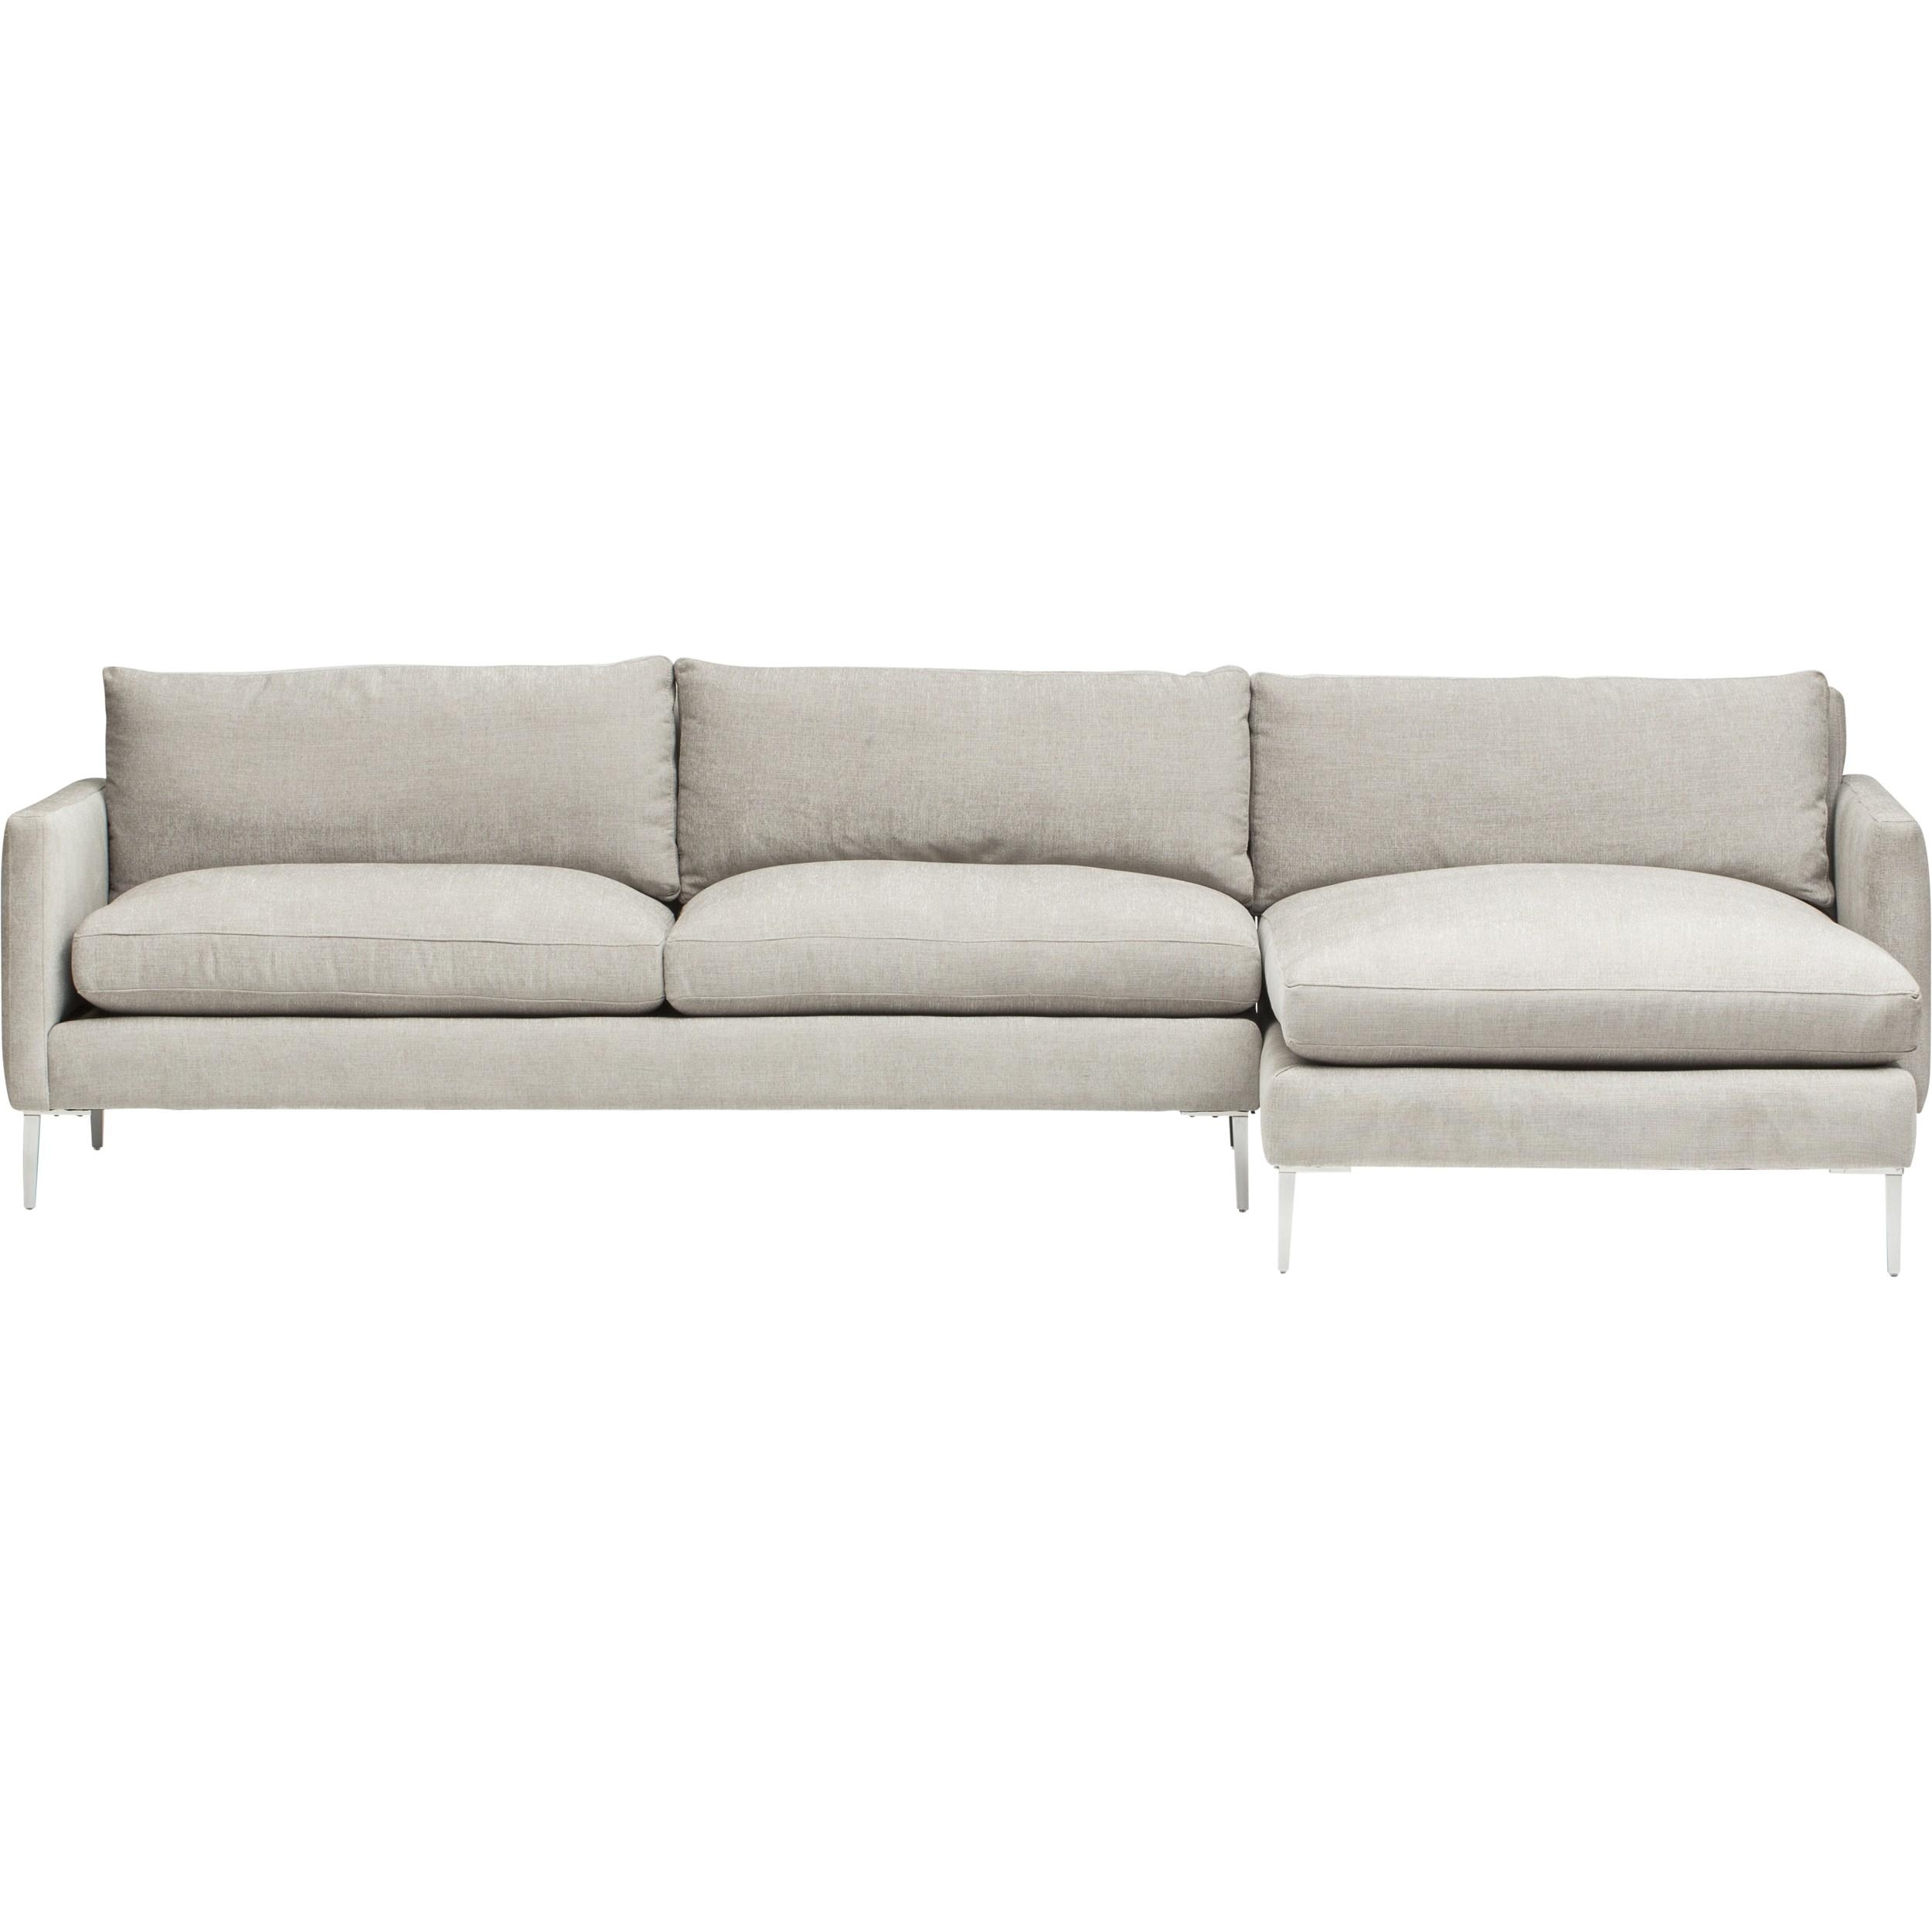 Marshall Sectional, Danville Cloud – Fabric – Sofas – Furniture Within Cloud Sectional Sofas (Image 15 of 20)